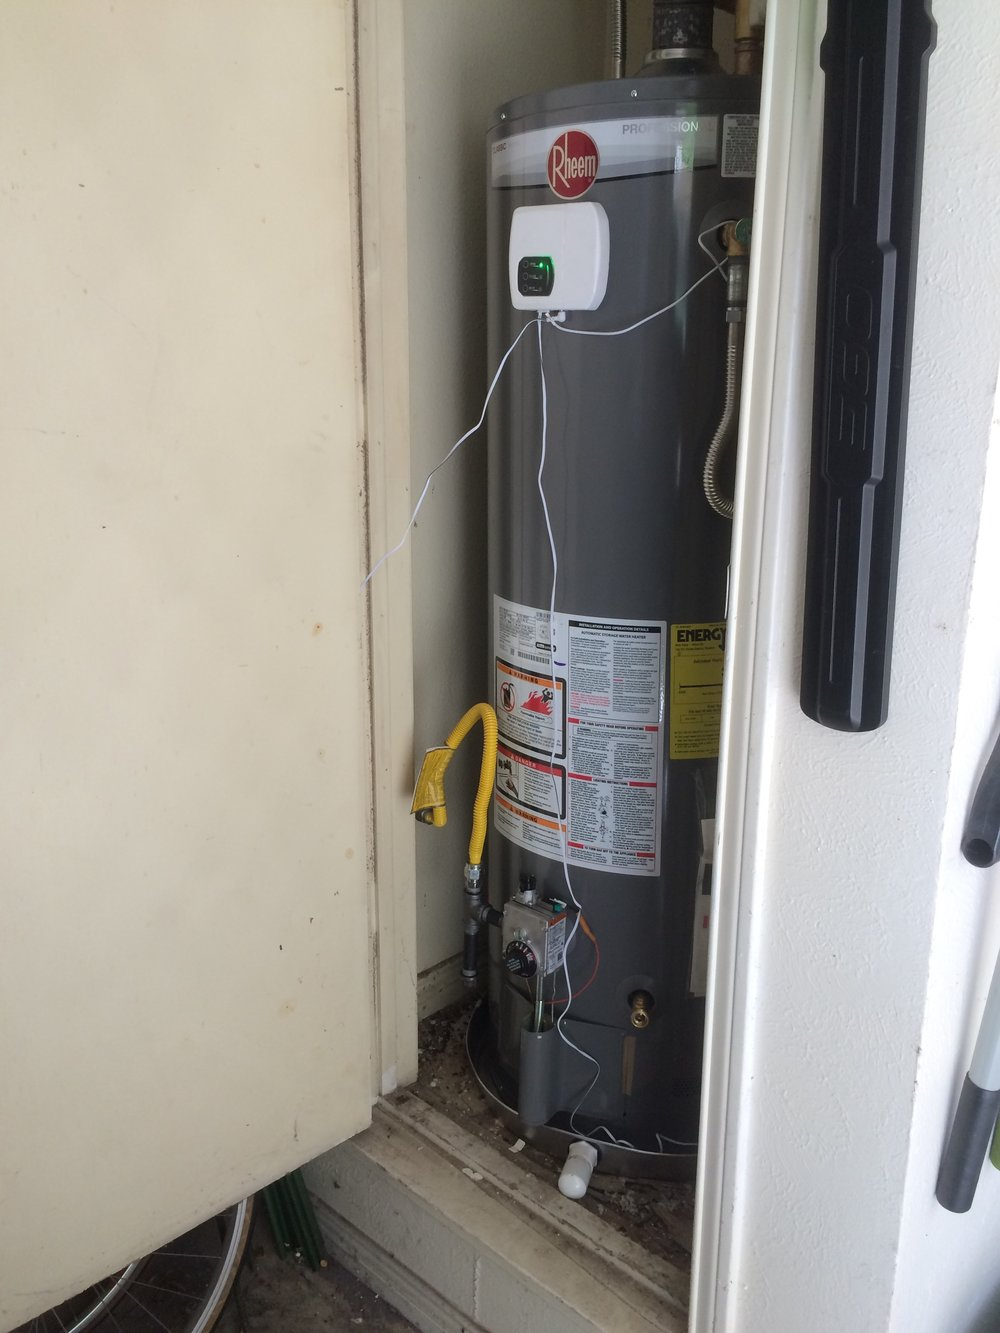 new water heater front view.jpg